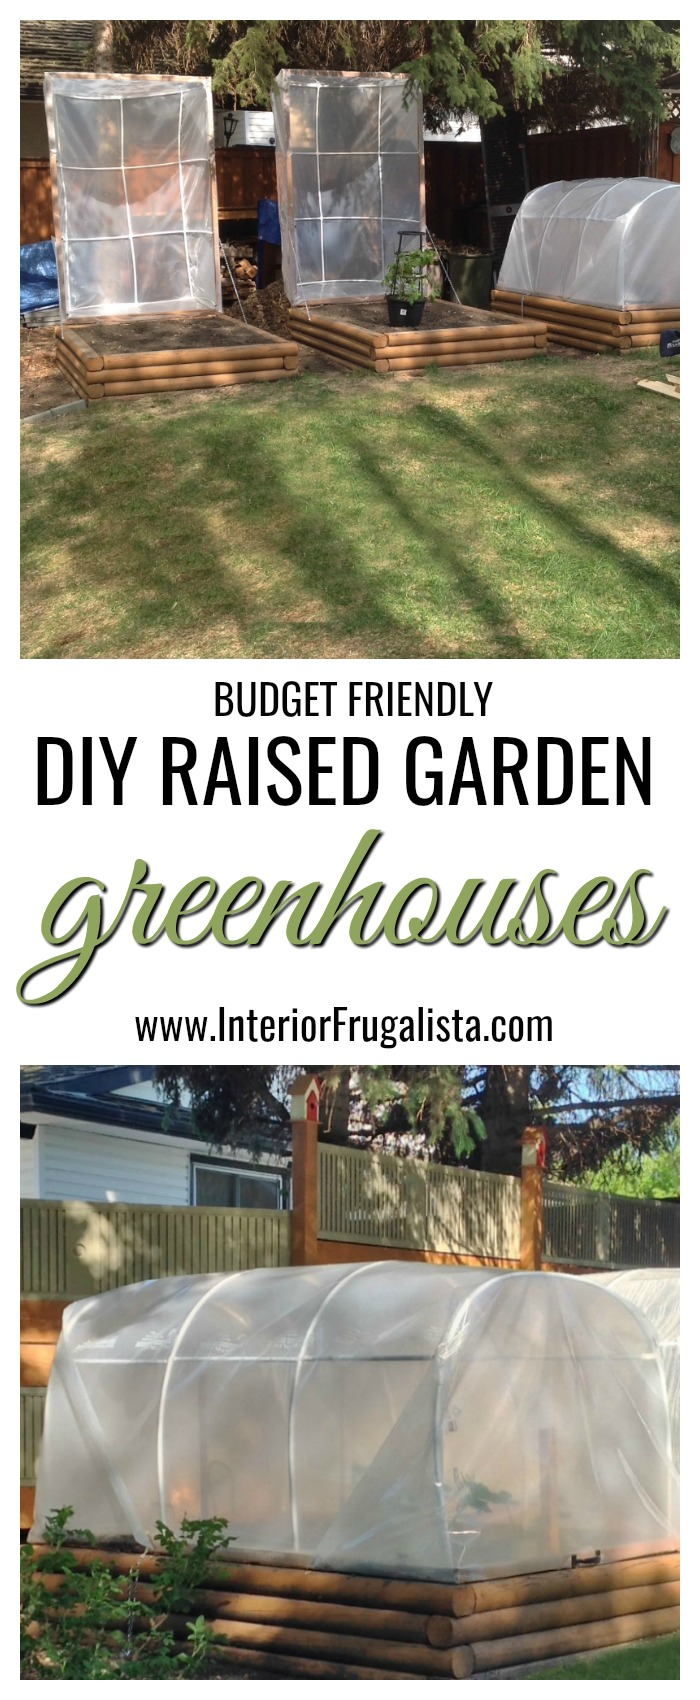 Here is a clever idea for budget-friendly DIY raised garden greenhouses to extend the growing season when you live in a Zone 3 plant hardiness zone. #diygreenhouse #raisedgardengreenhouse #minigreenhouse